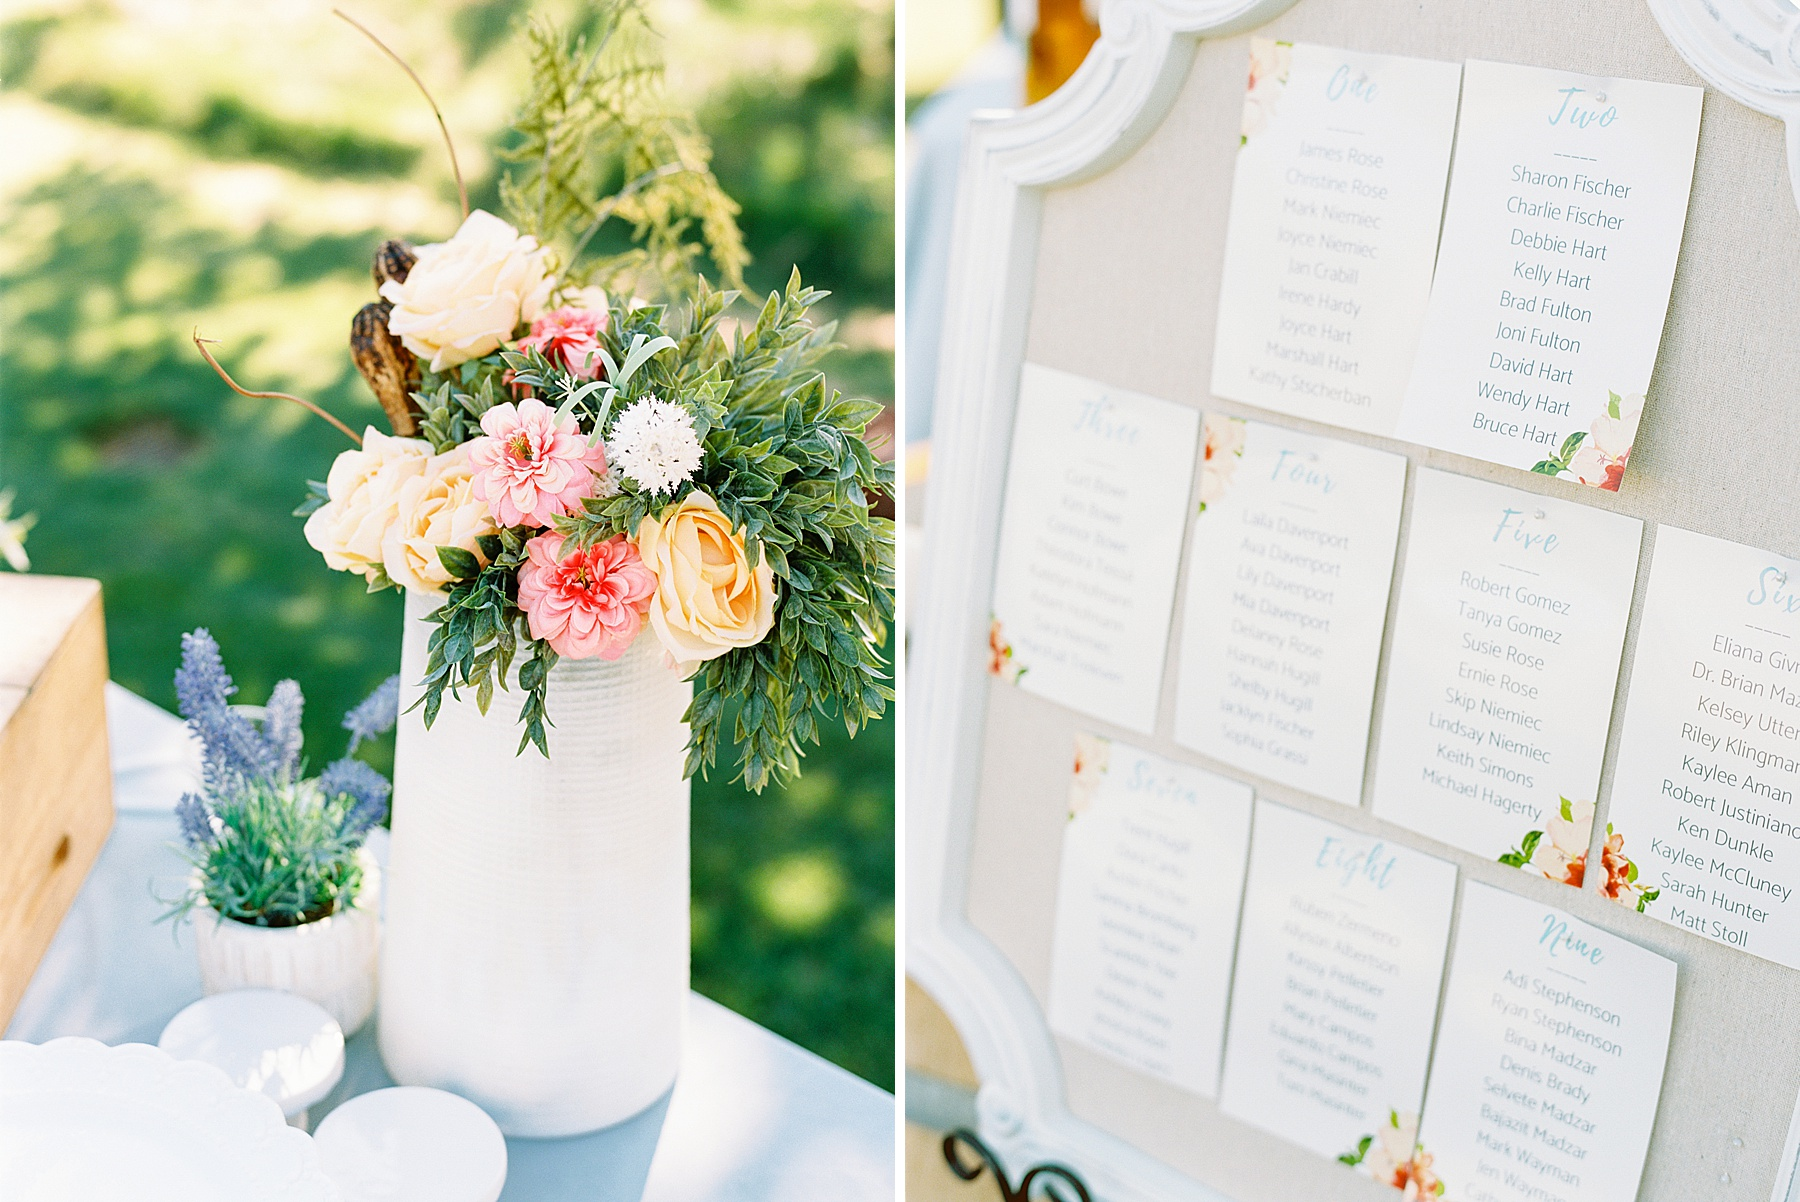 Wente Wedding with A Tropical Color Palette - Ashley & Mike - Featured on Inspired by This - Ashley Baumgartner_0045.jpg